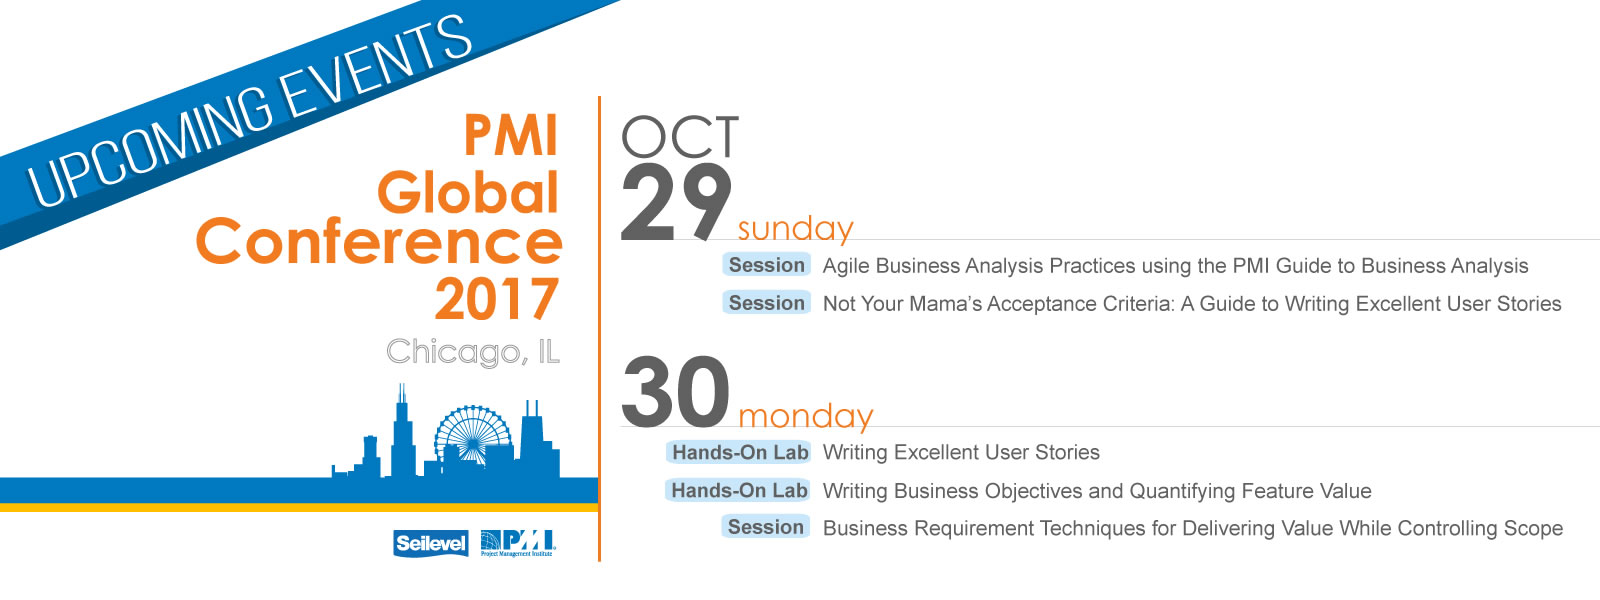 Upcoming Events - PMI Global Conference 2017